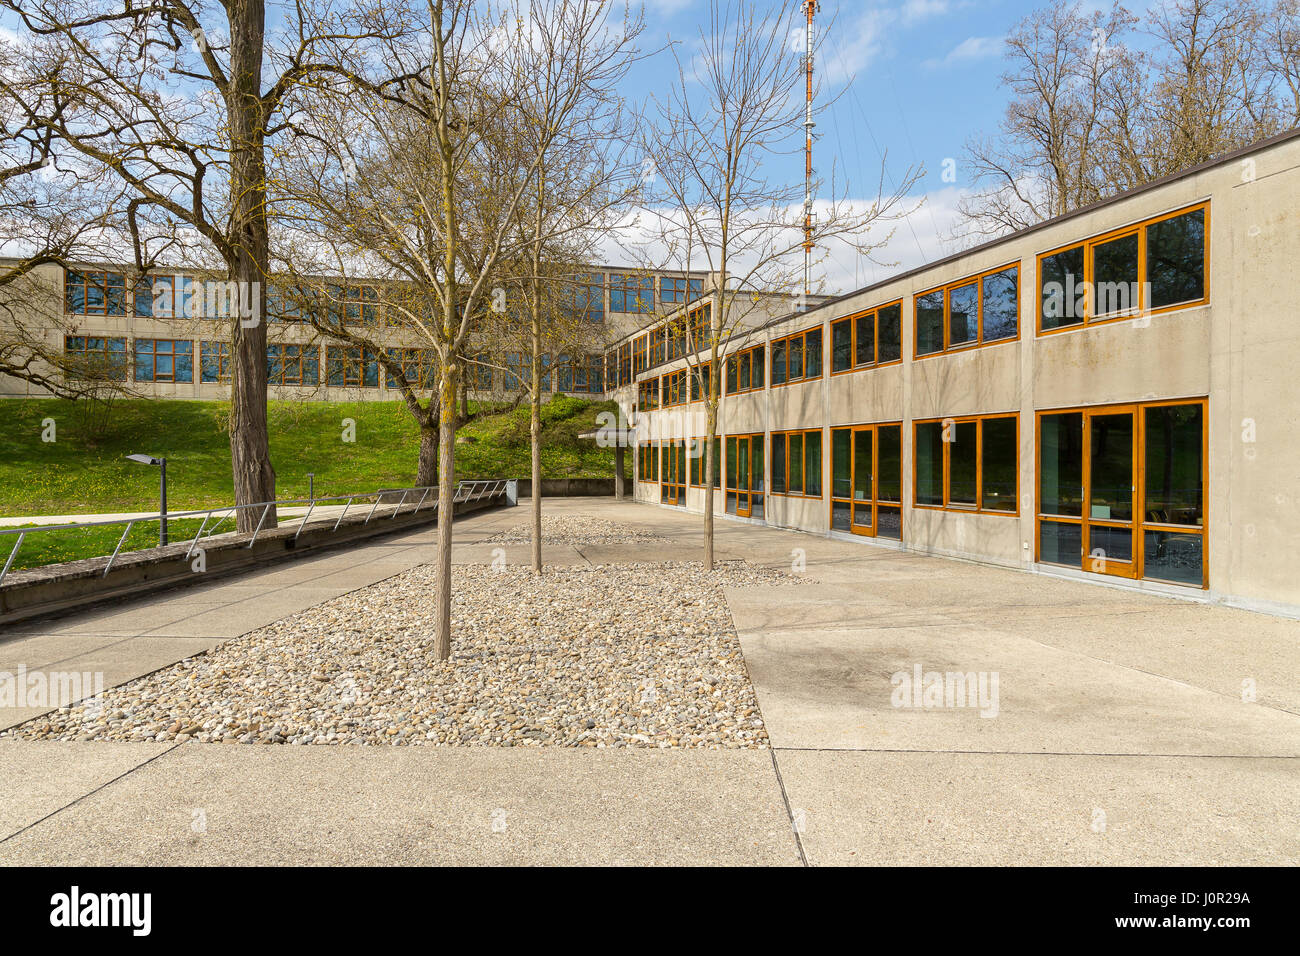 The Ulm School Of Design Hochschule Für Gestaltung In Ulm Germany Stock Photo Alamy